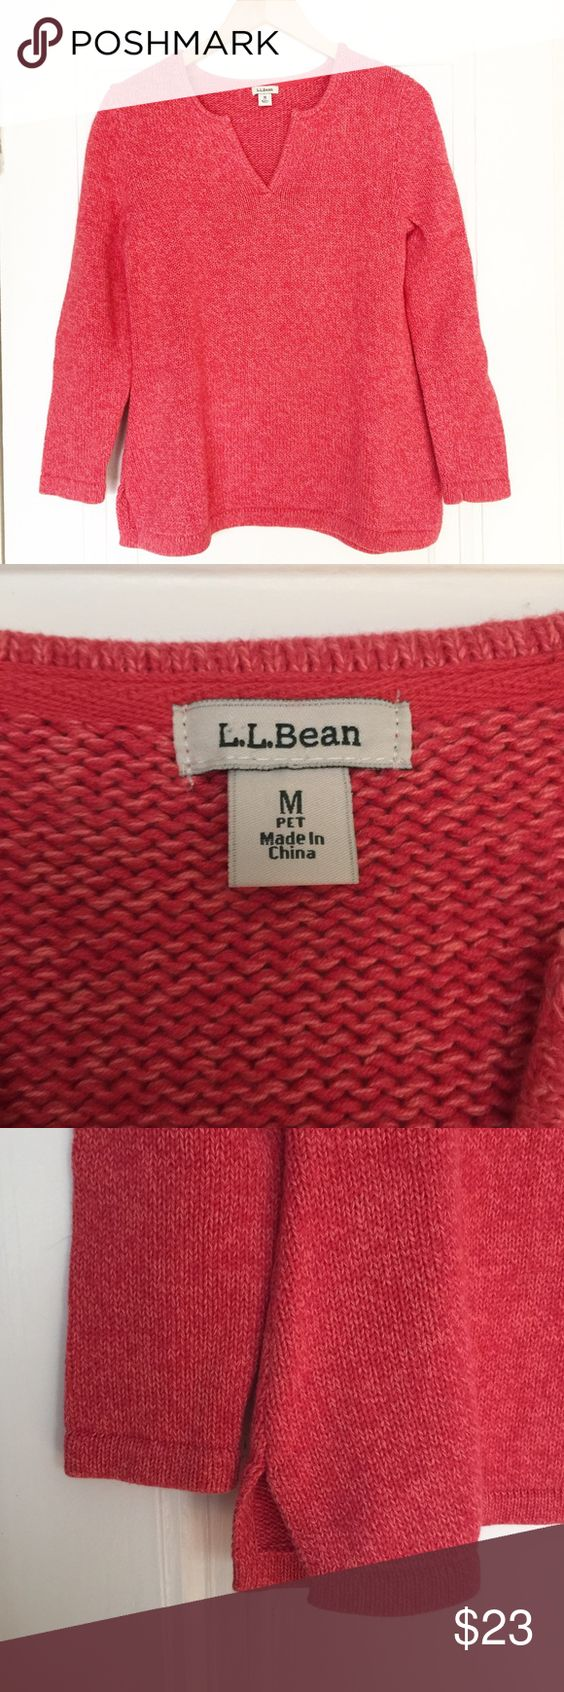 L.L. Bean Tunic Sweater Excellent pre-loved condition. No rips or stains. First picture filtered. Please no trades. L.L. Bean Sweaters